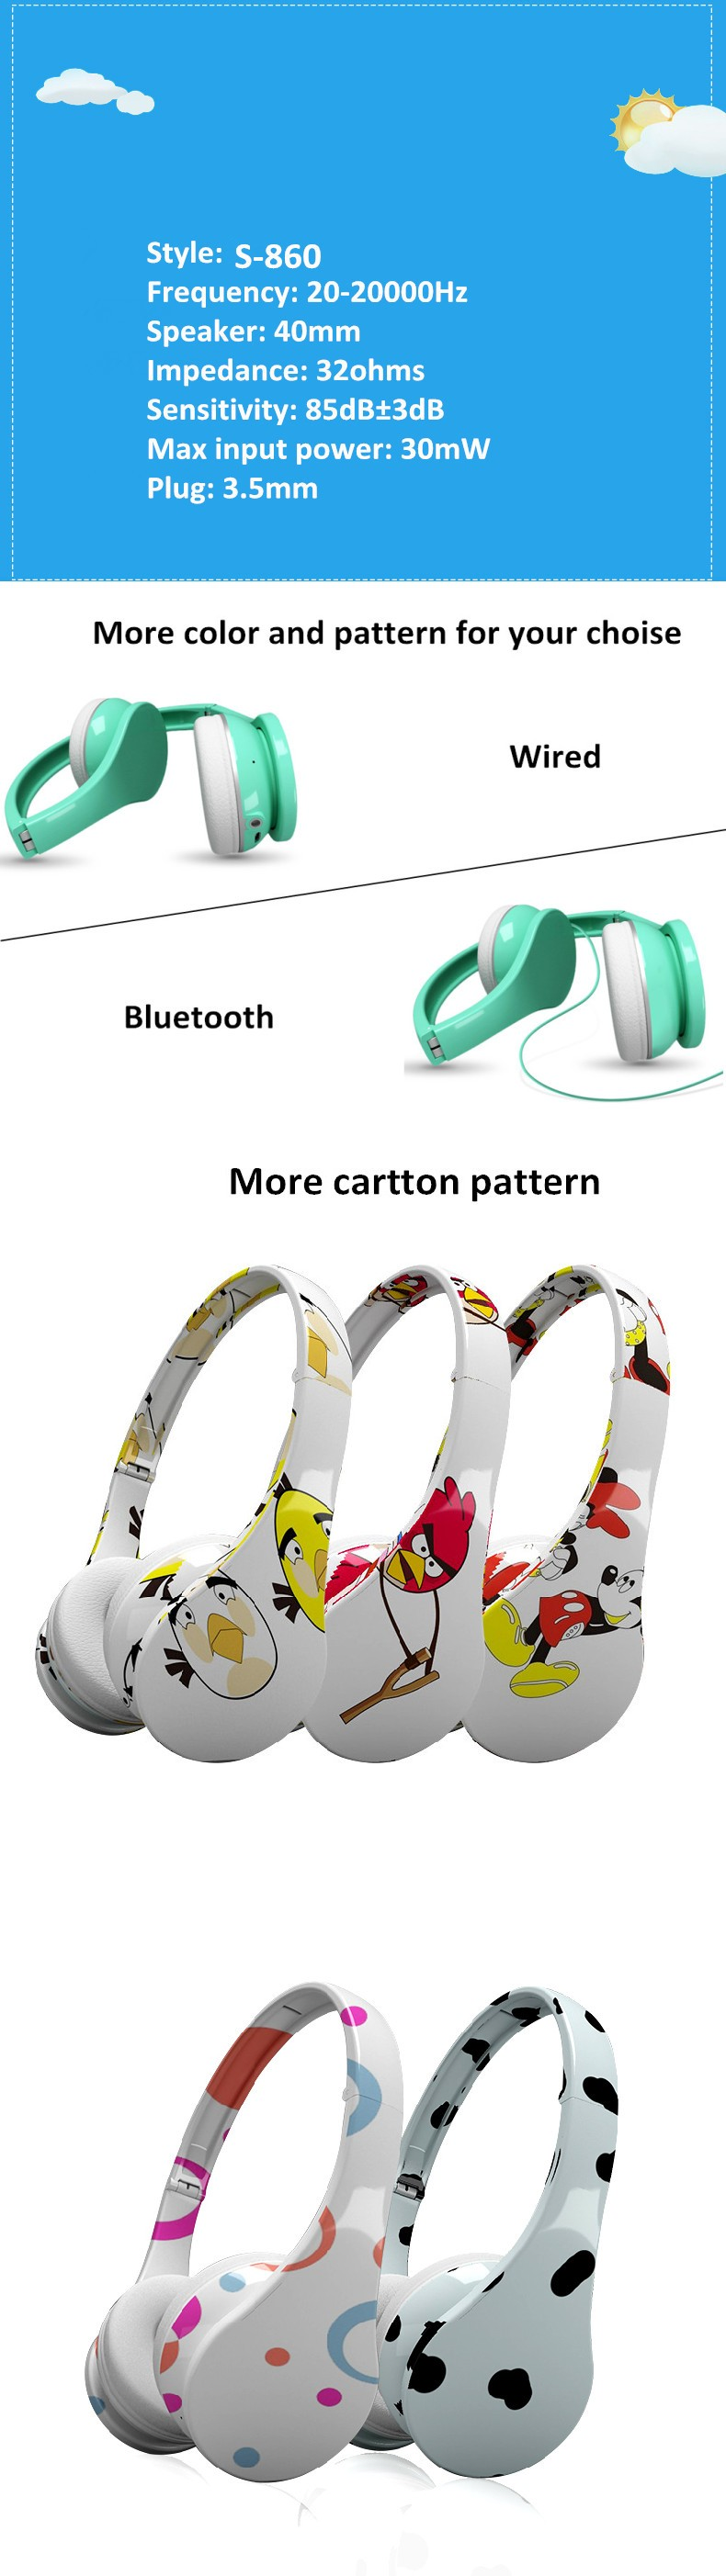 Best Selling Products Headphones Wired Kids 85db Headsets Alibaba In Russian - Buy Best Selling Products,Kids Headphone 85db,Alibaba In Russian ...